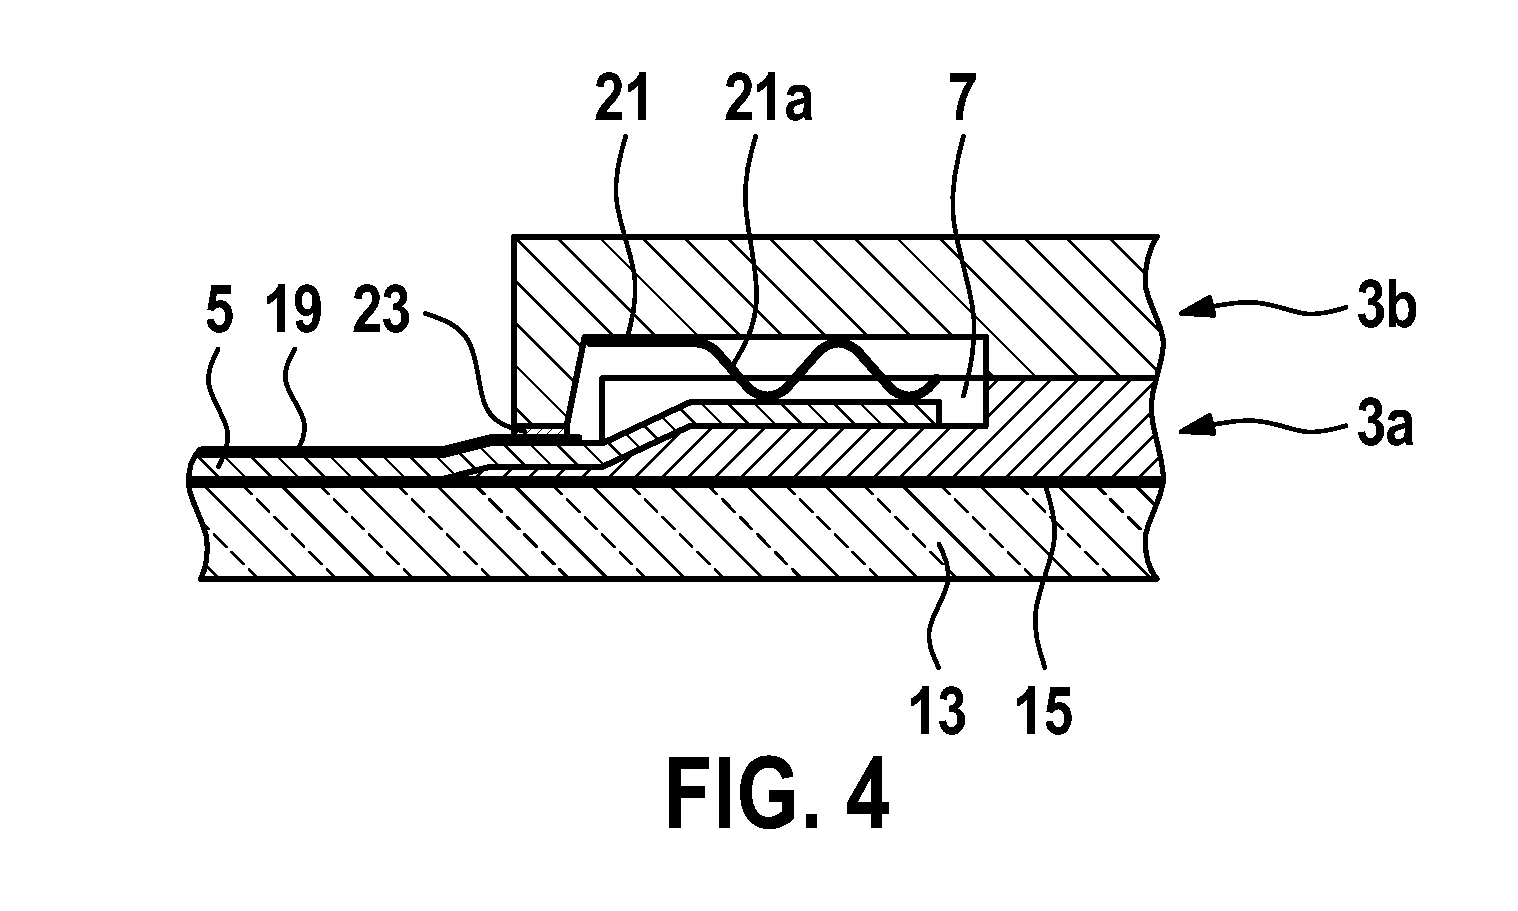 wo2012065772a1 junction box of a solar cell module  solar